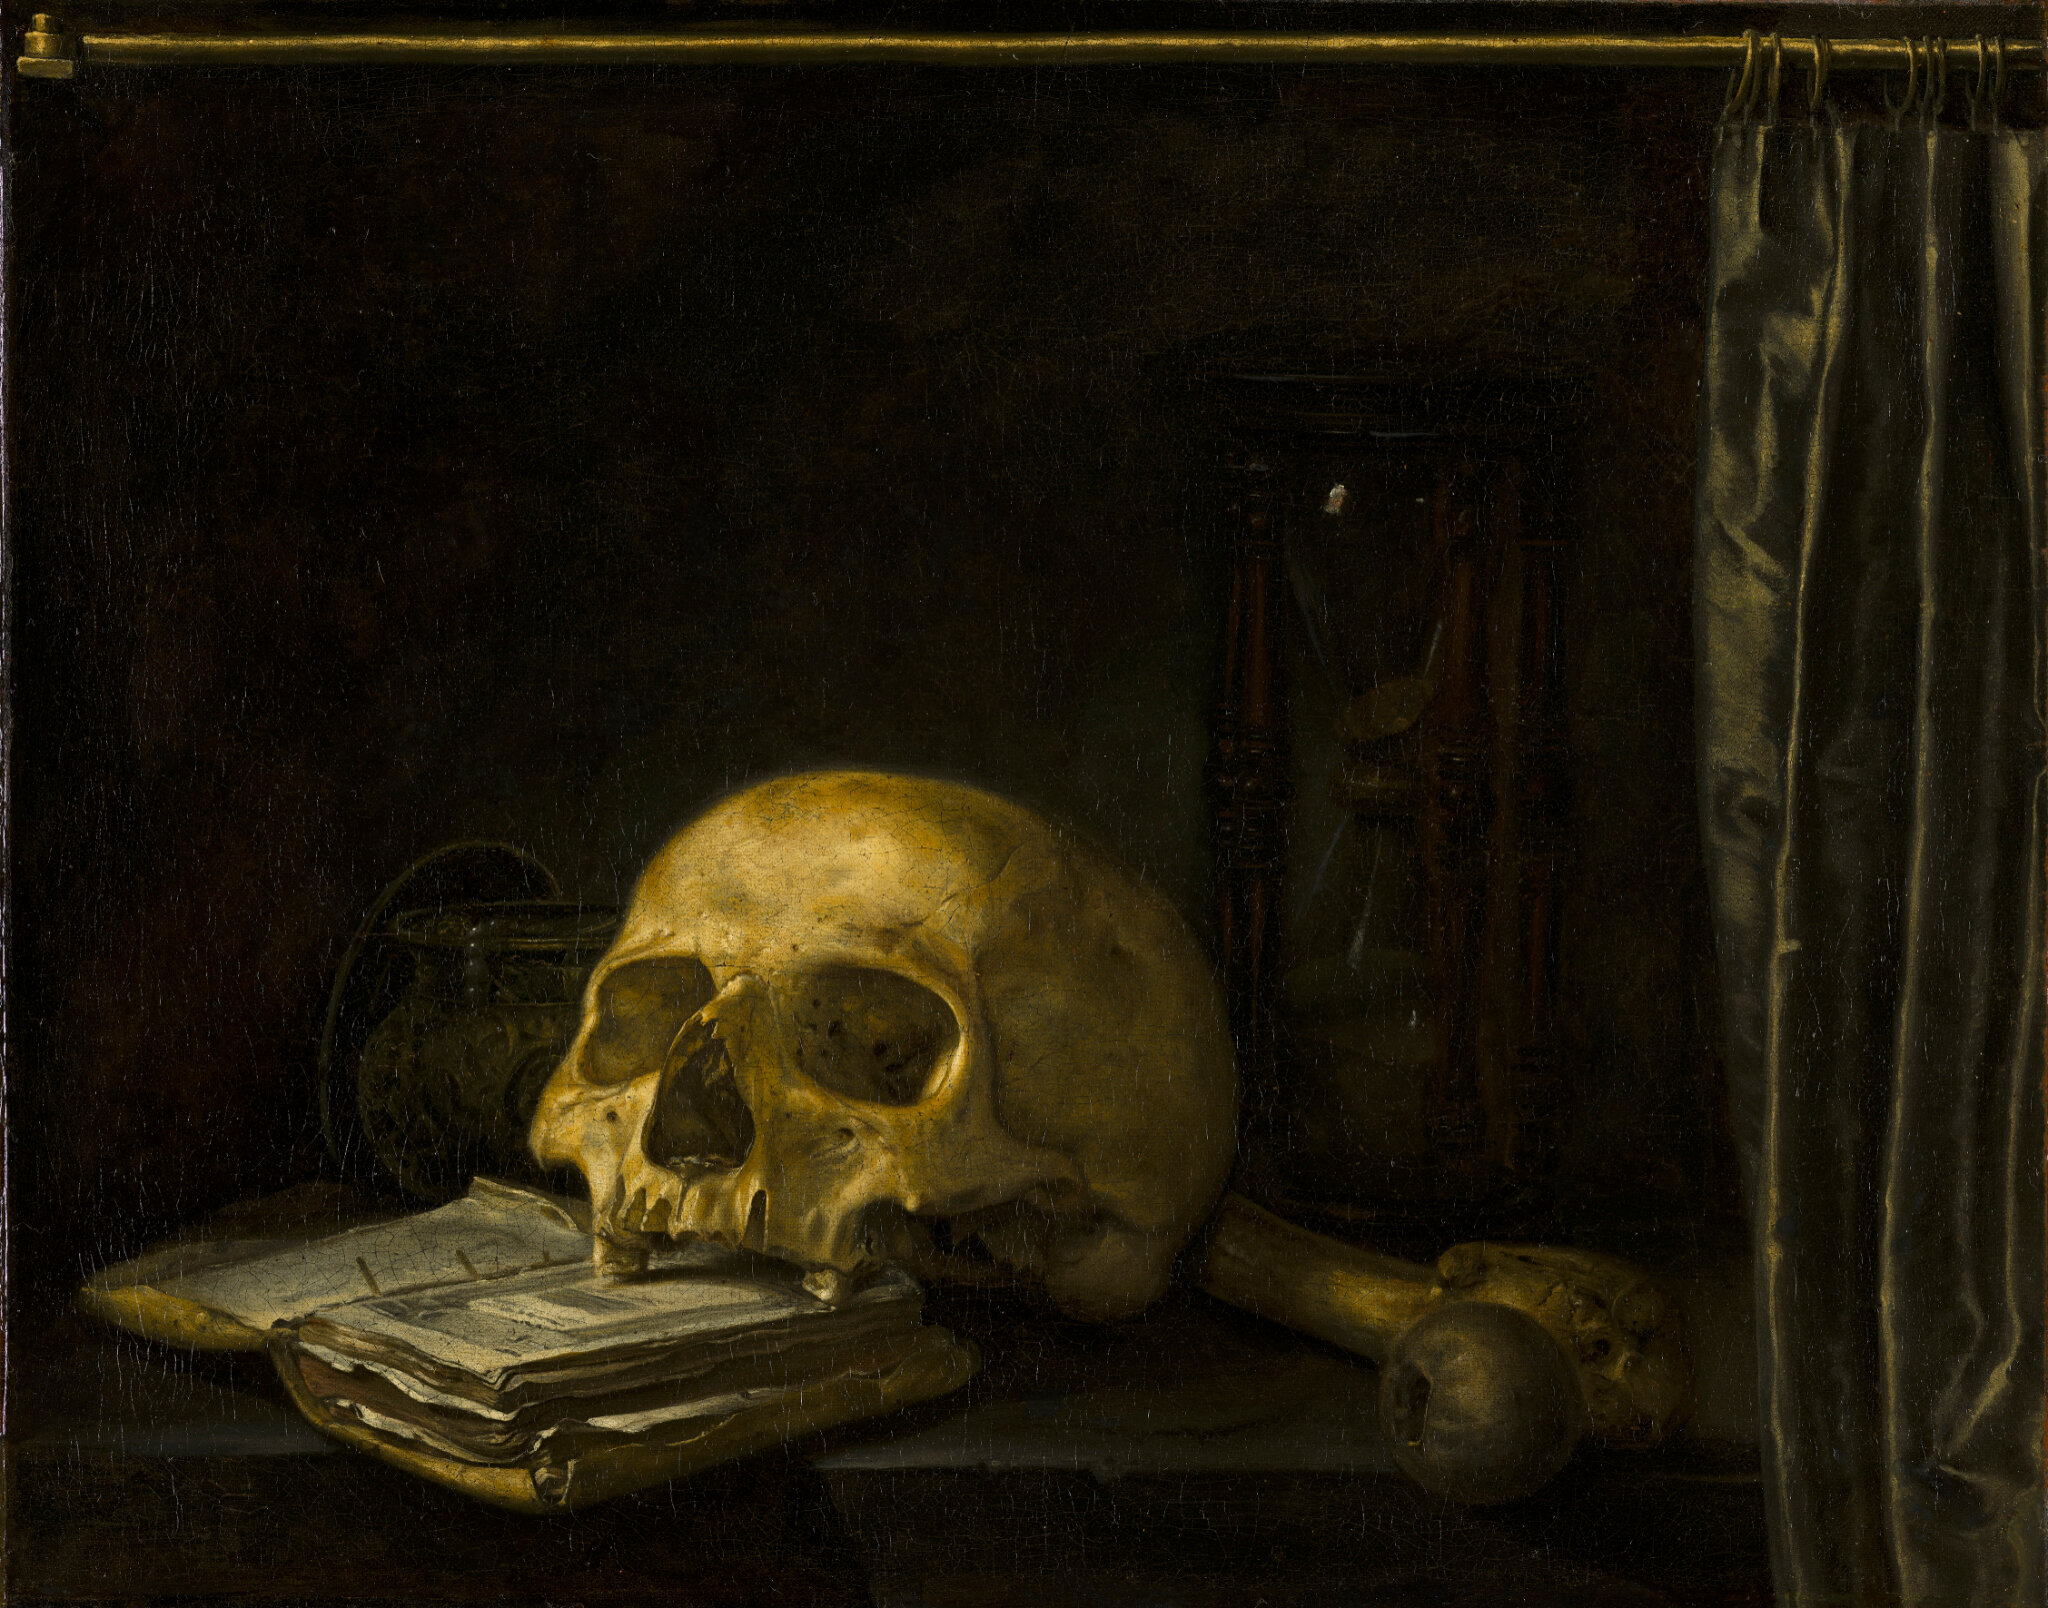 Anonymous (Northern Netherlands), Vanitas Still Life, c. 1650, oil on canvas, 45 x 56 cm. © 2019 Mauritshuis ------WebKitFormBoundaryAOKvZziJQfD7bmSz Content-Disposition: form-data; name=